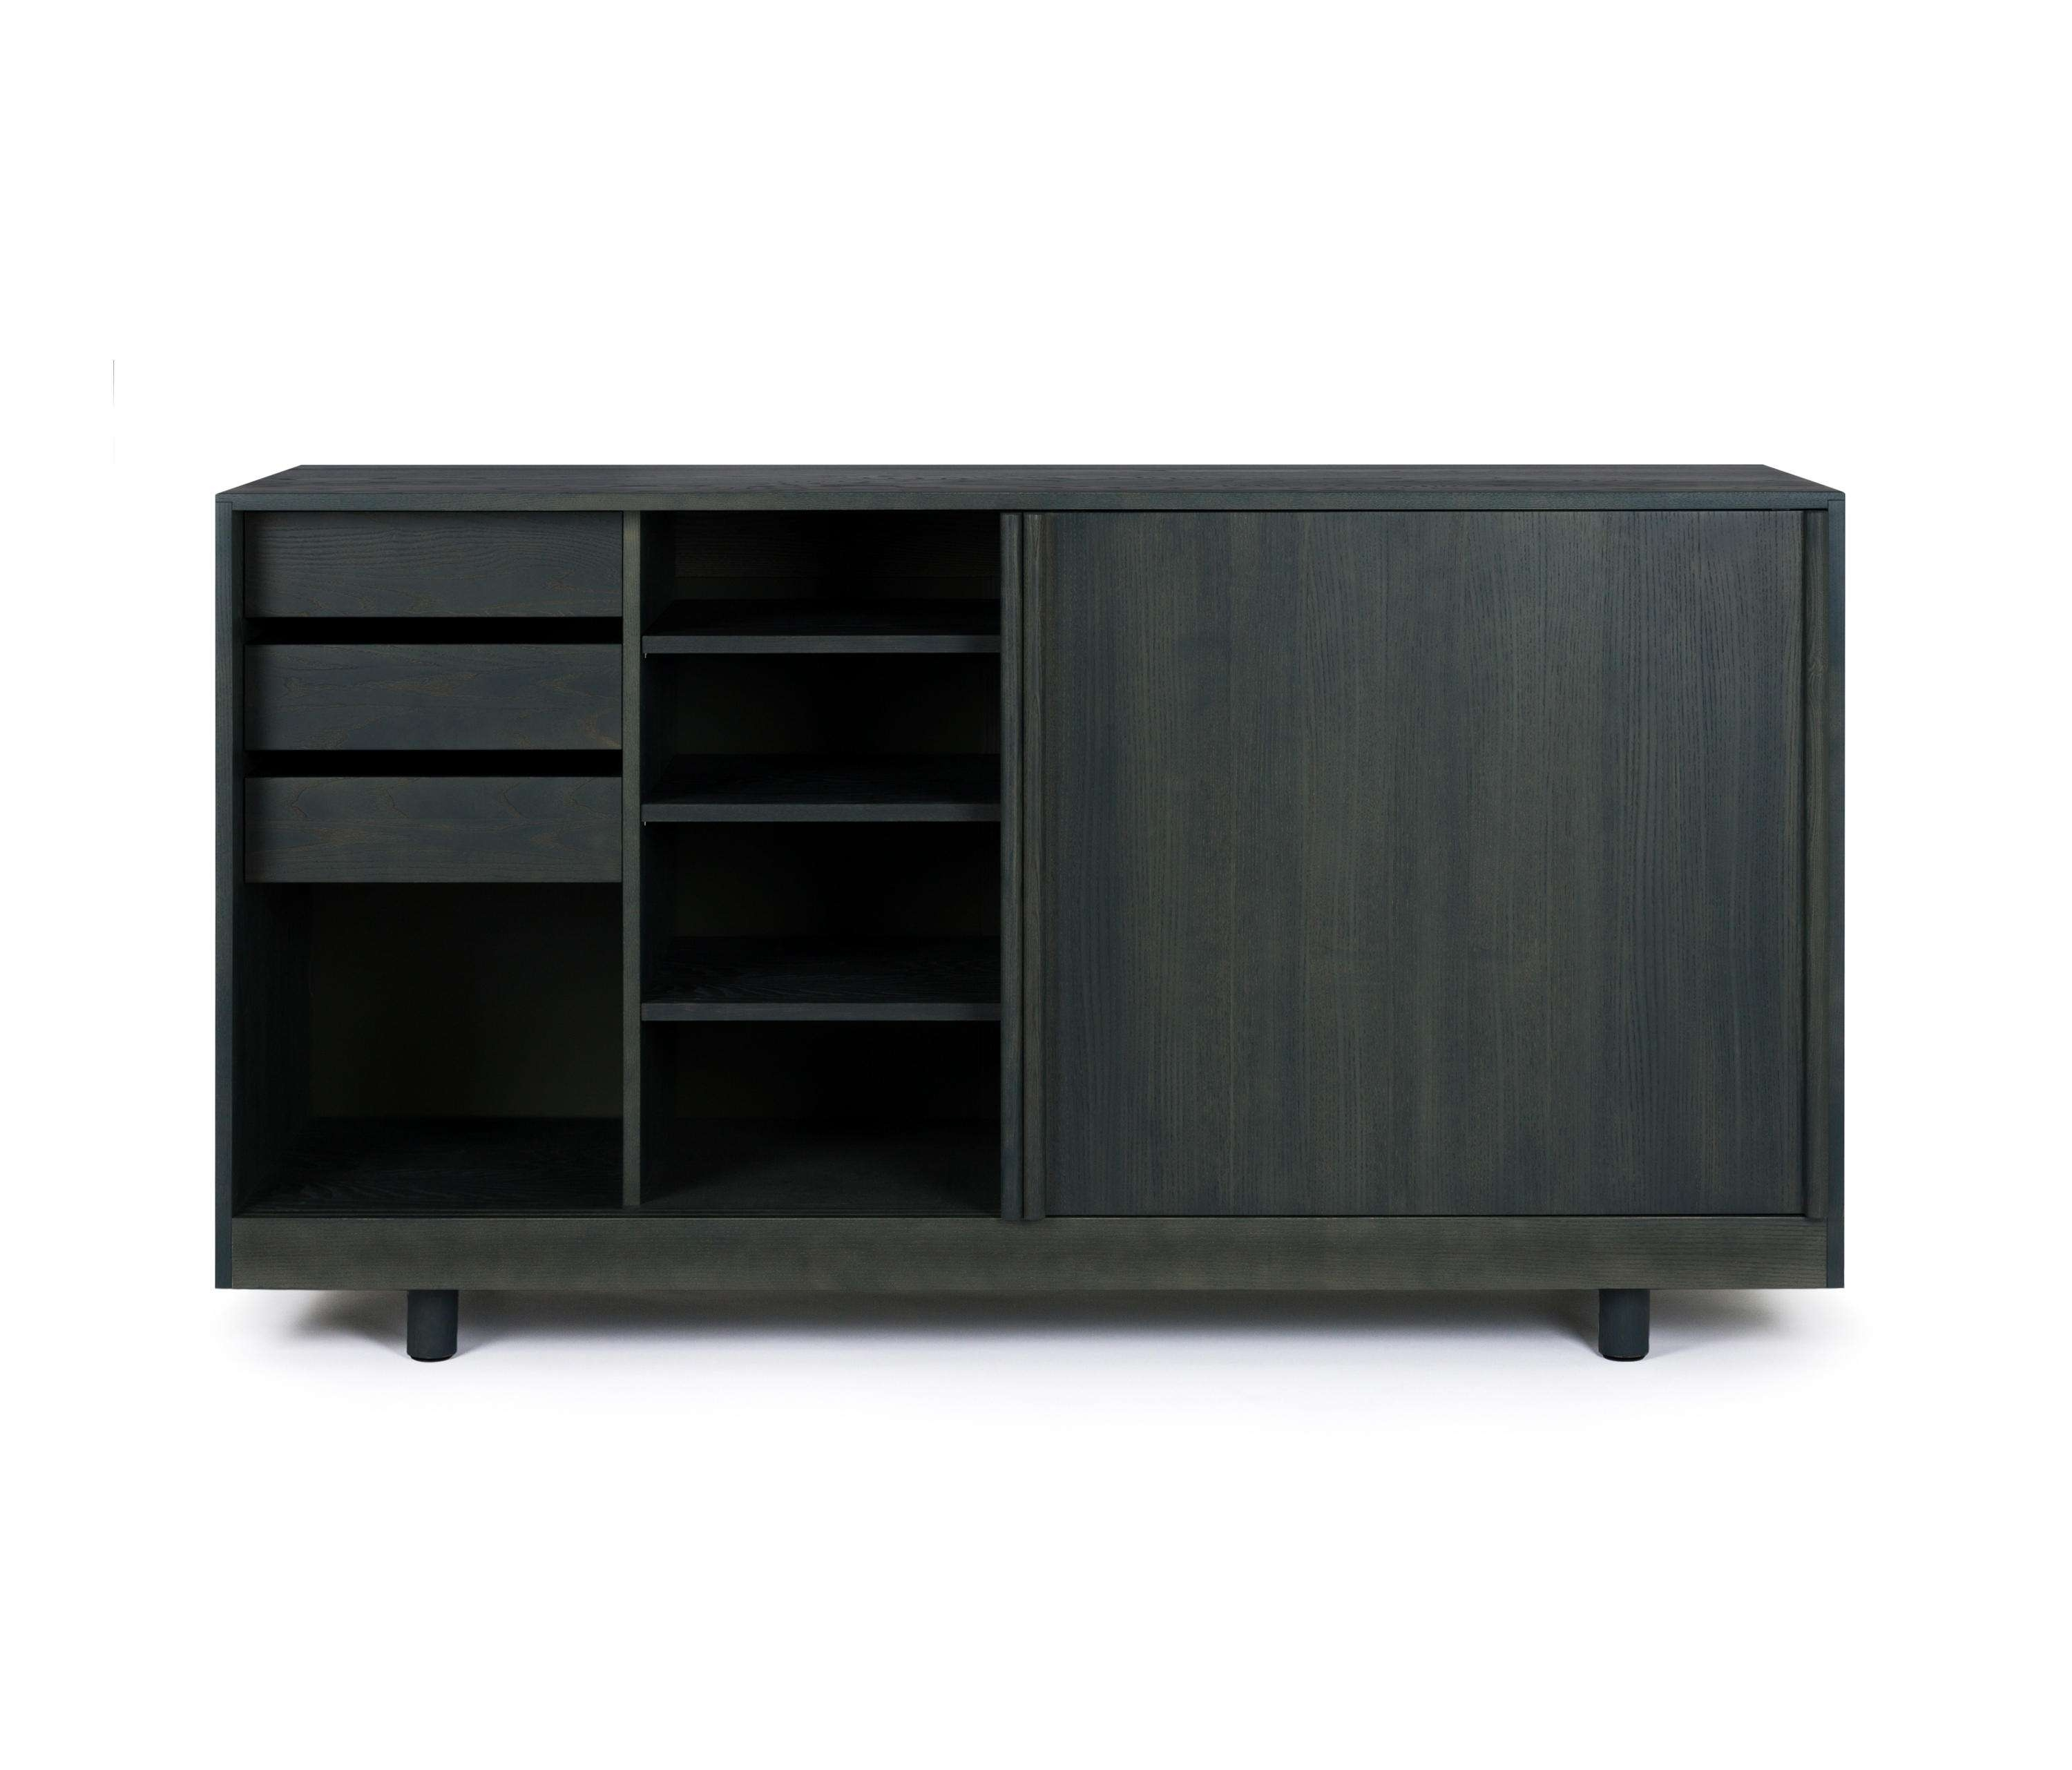 Sideboard With Sliding Doors Forest Green – Sideboards From Throughout Green Sideboards (View 11 of 20)